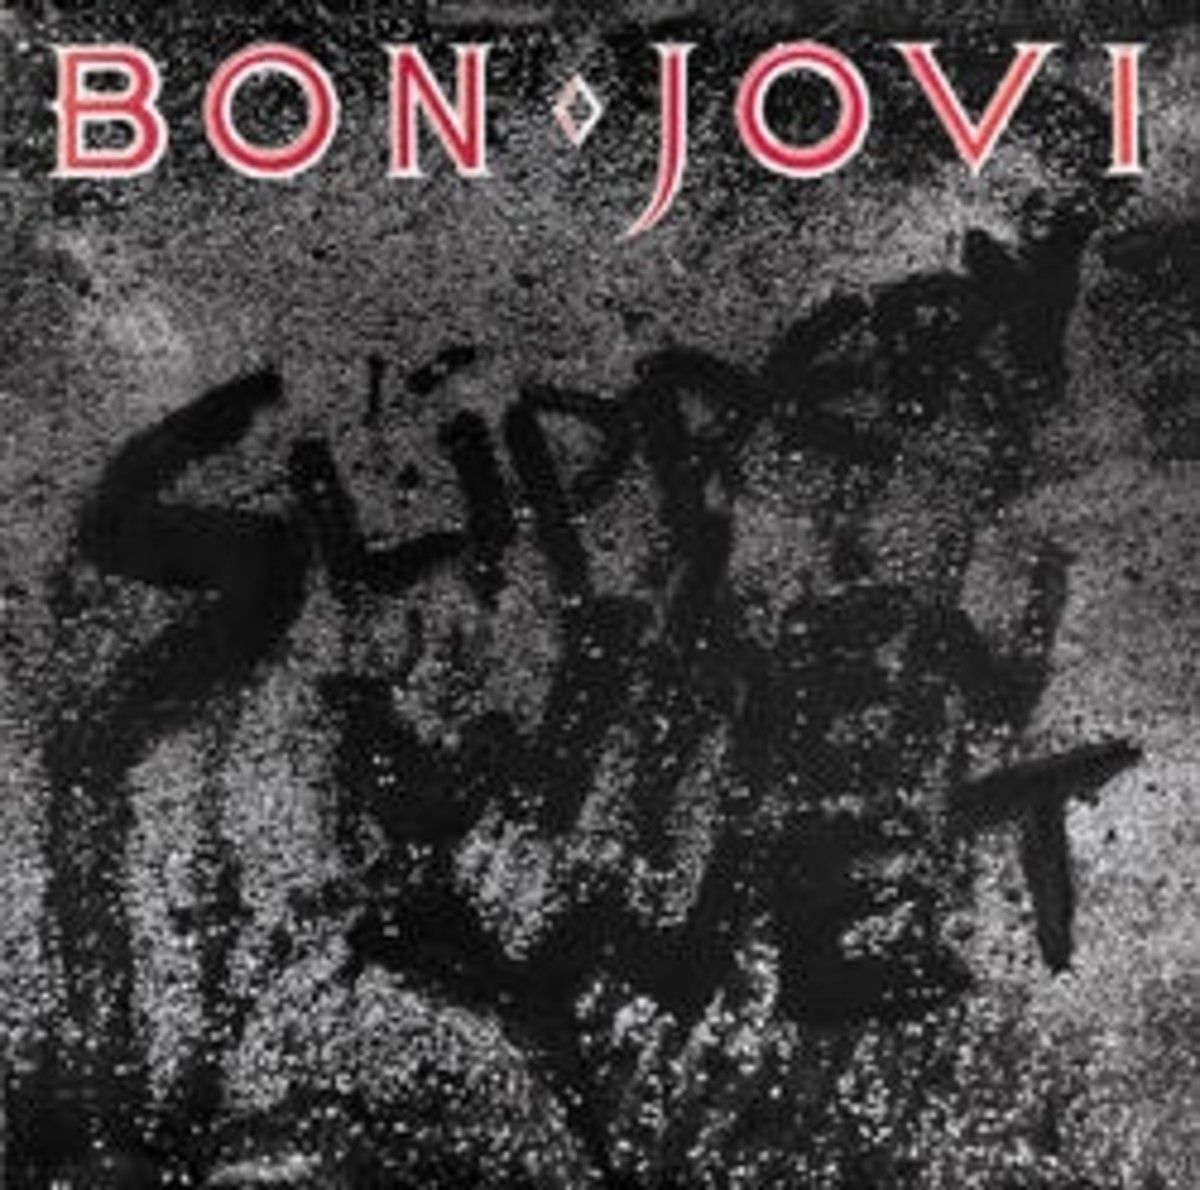 BON JOVI SLIPPERY WHEN WET COVER FROM ISLAND DEF JAM RECORD SITE